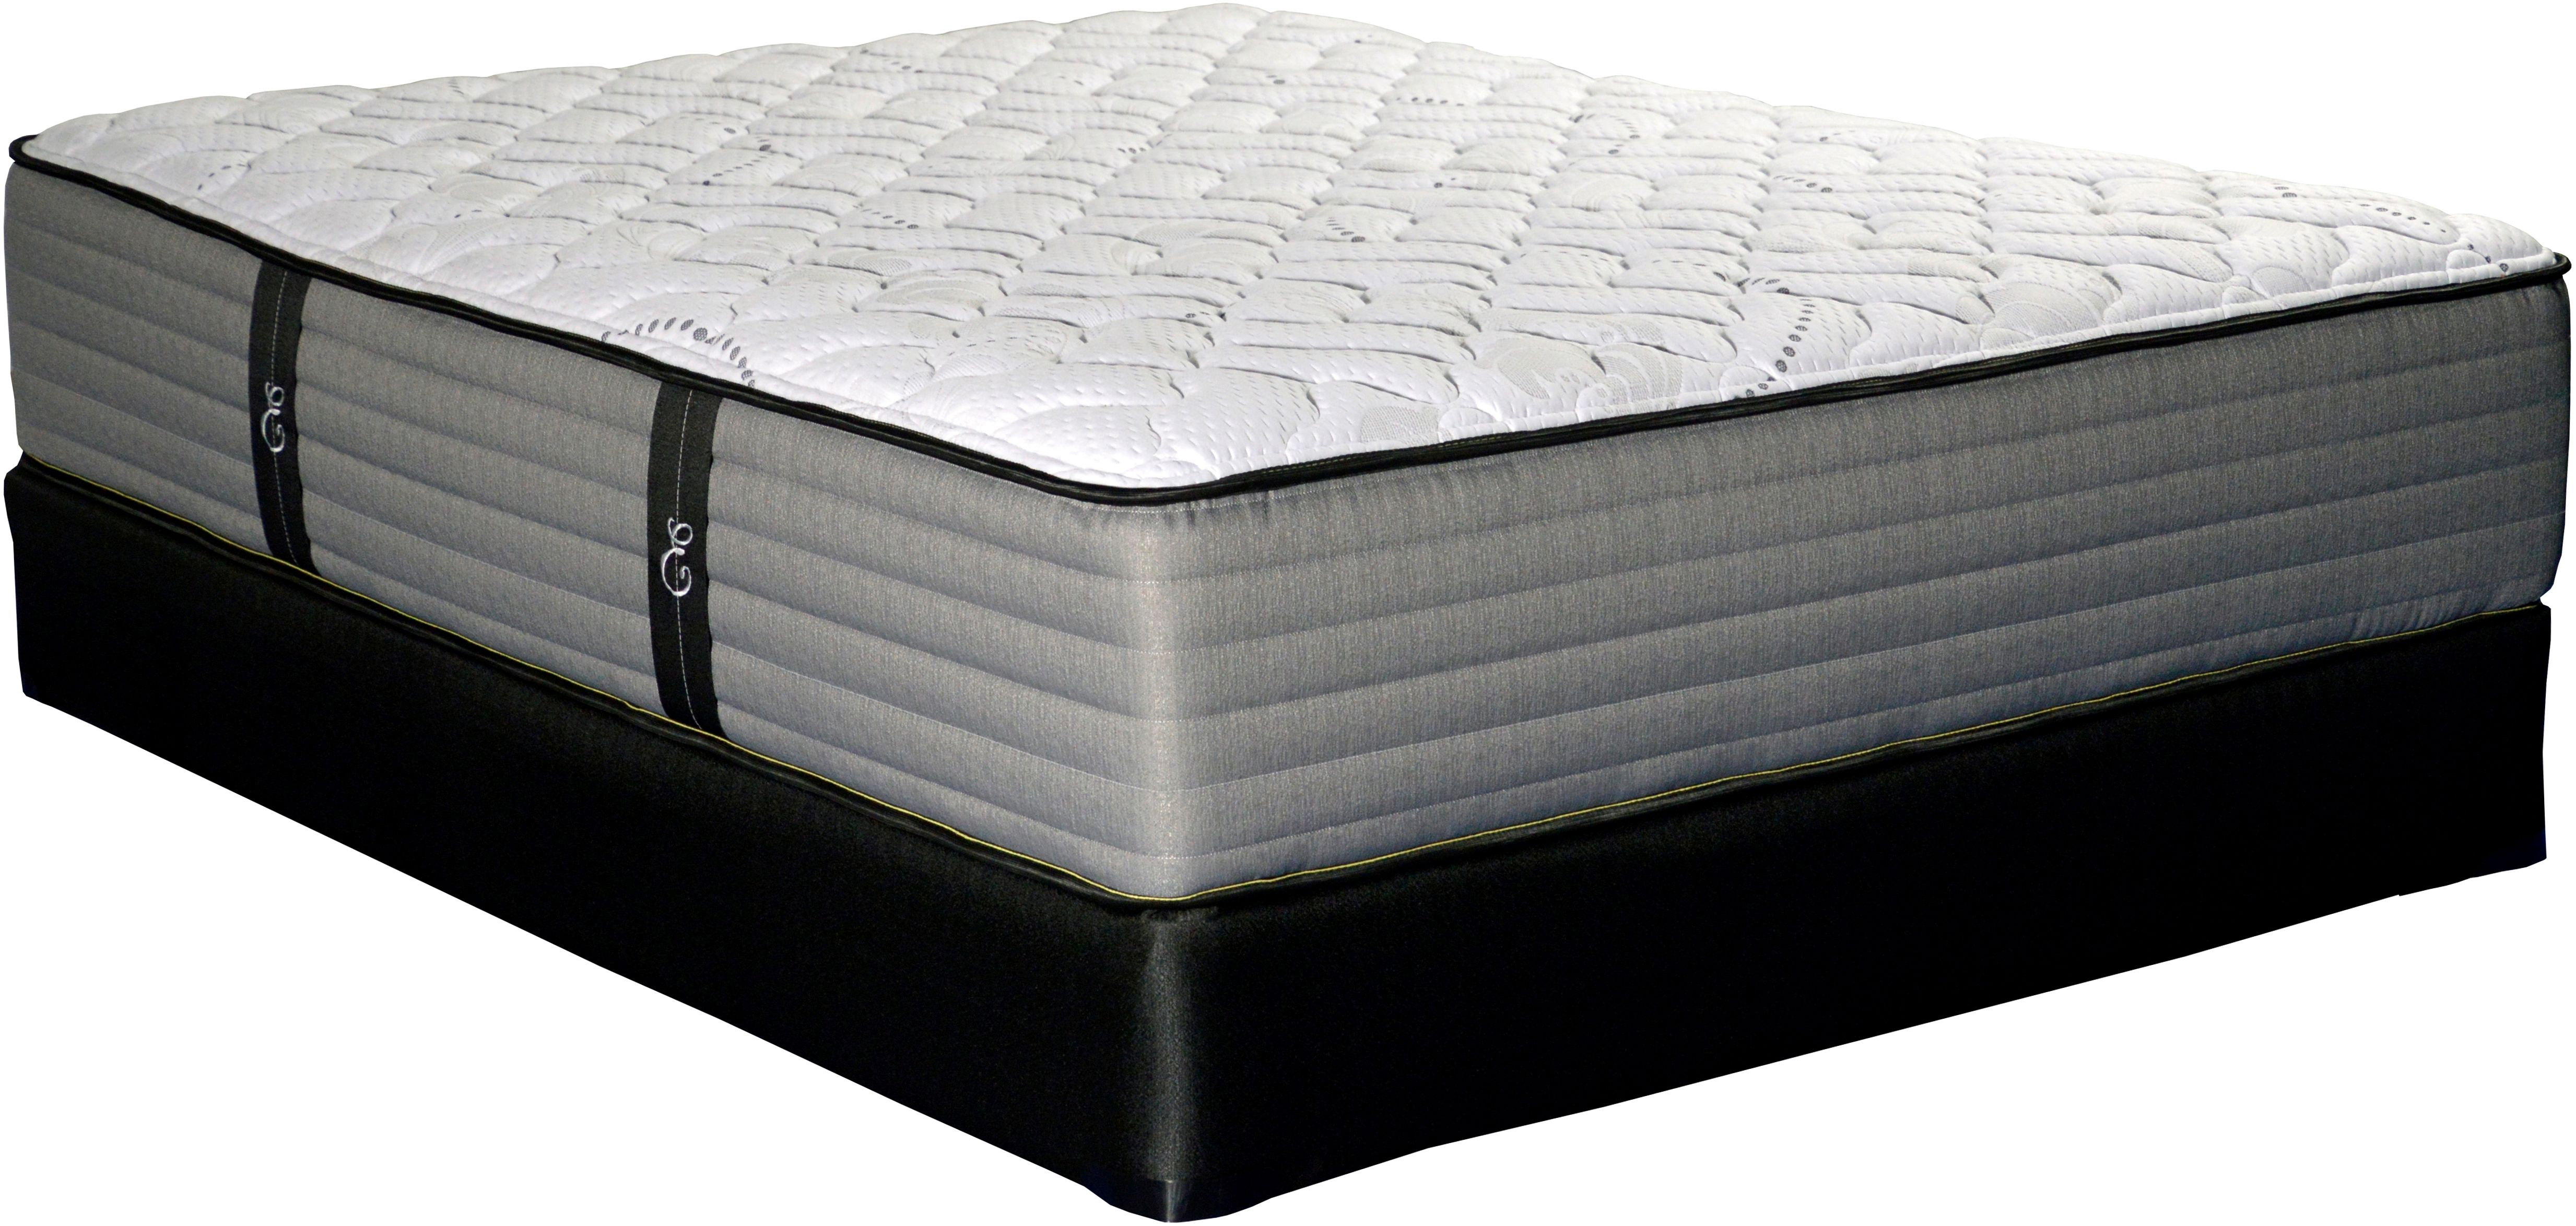 Englander Tension Ease Platinum Supreme Luxury Firm Mattress Twin